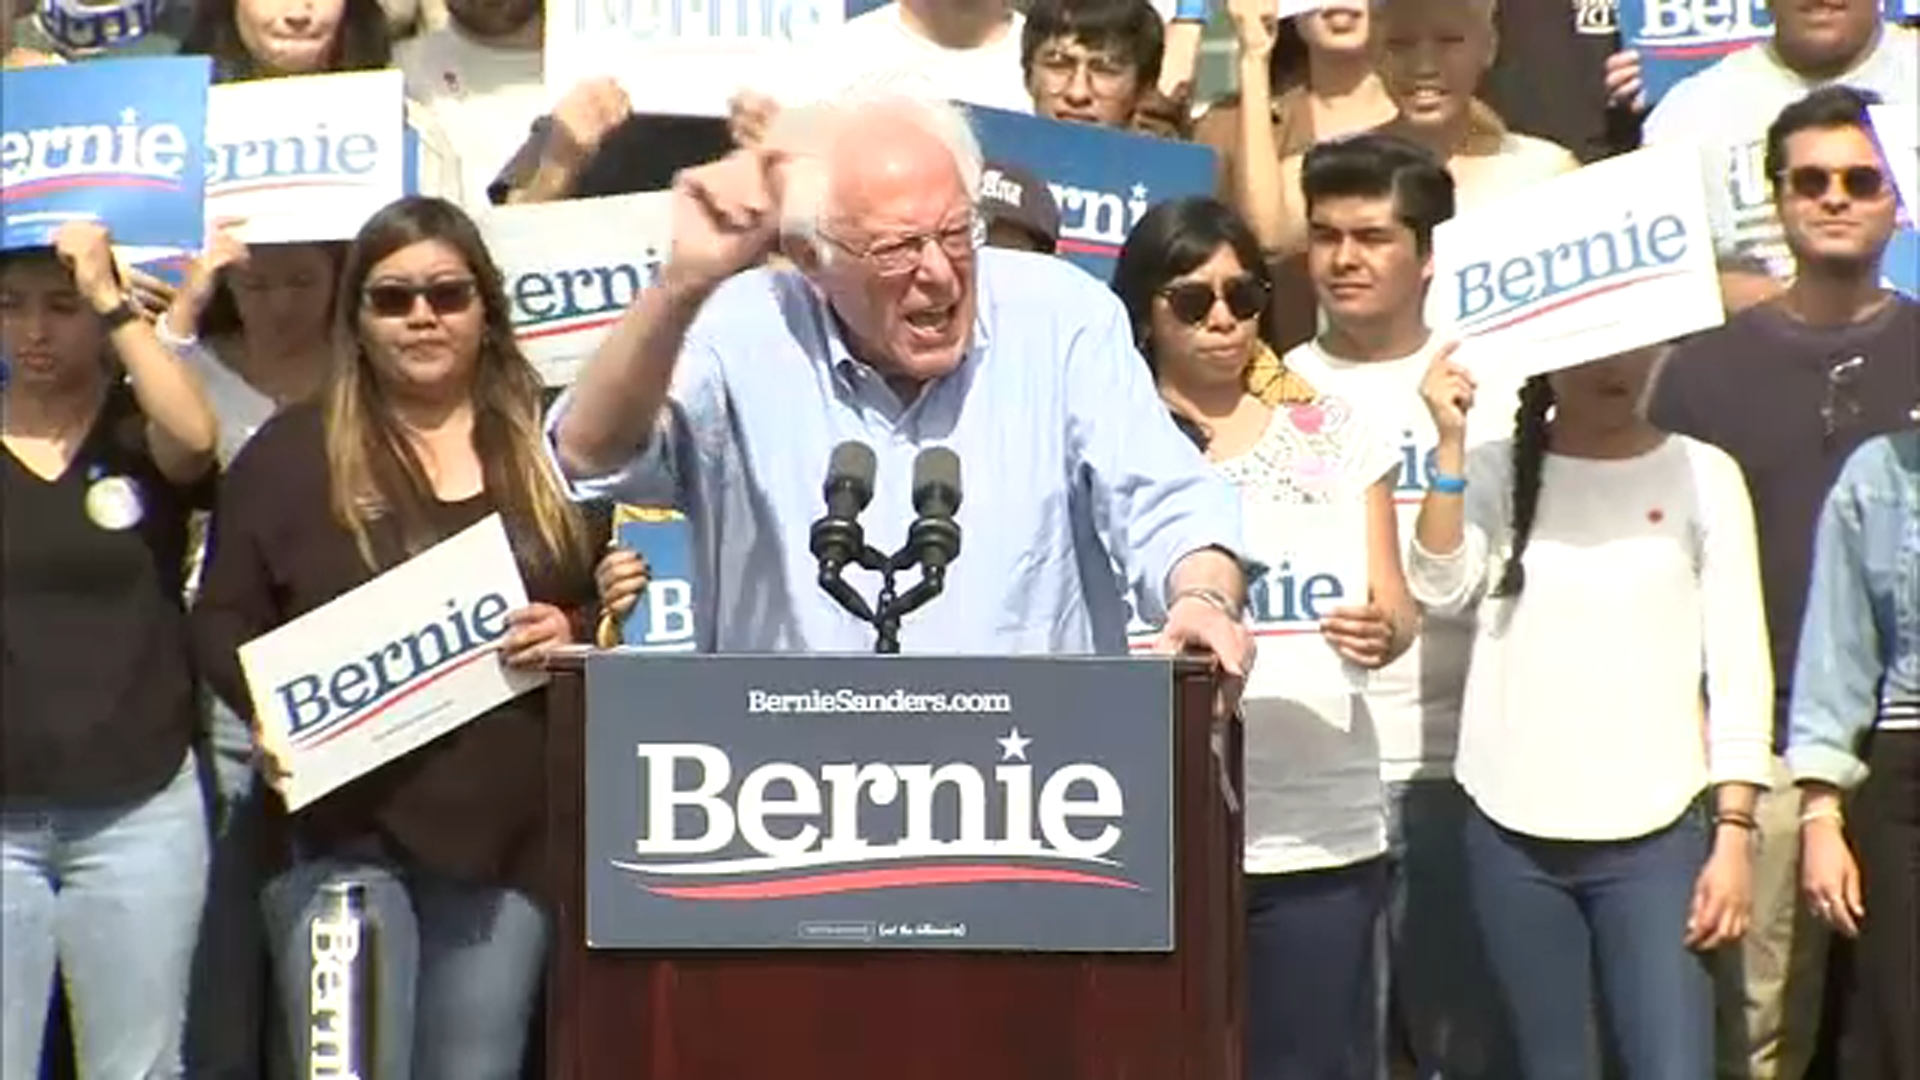 Bernie Sanders says Michael Bloomberg is 'worst candidate' to beat Trump ahead of Super Tuesday